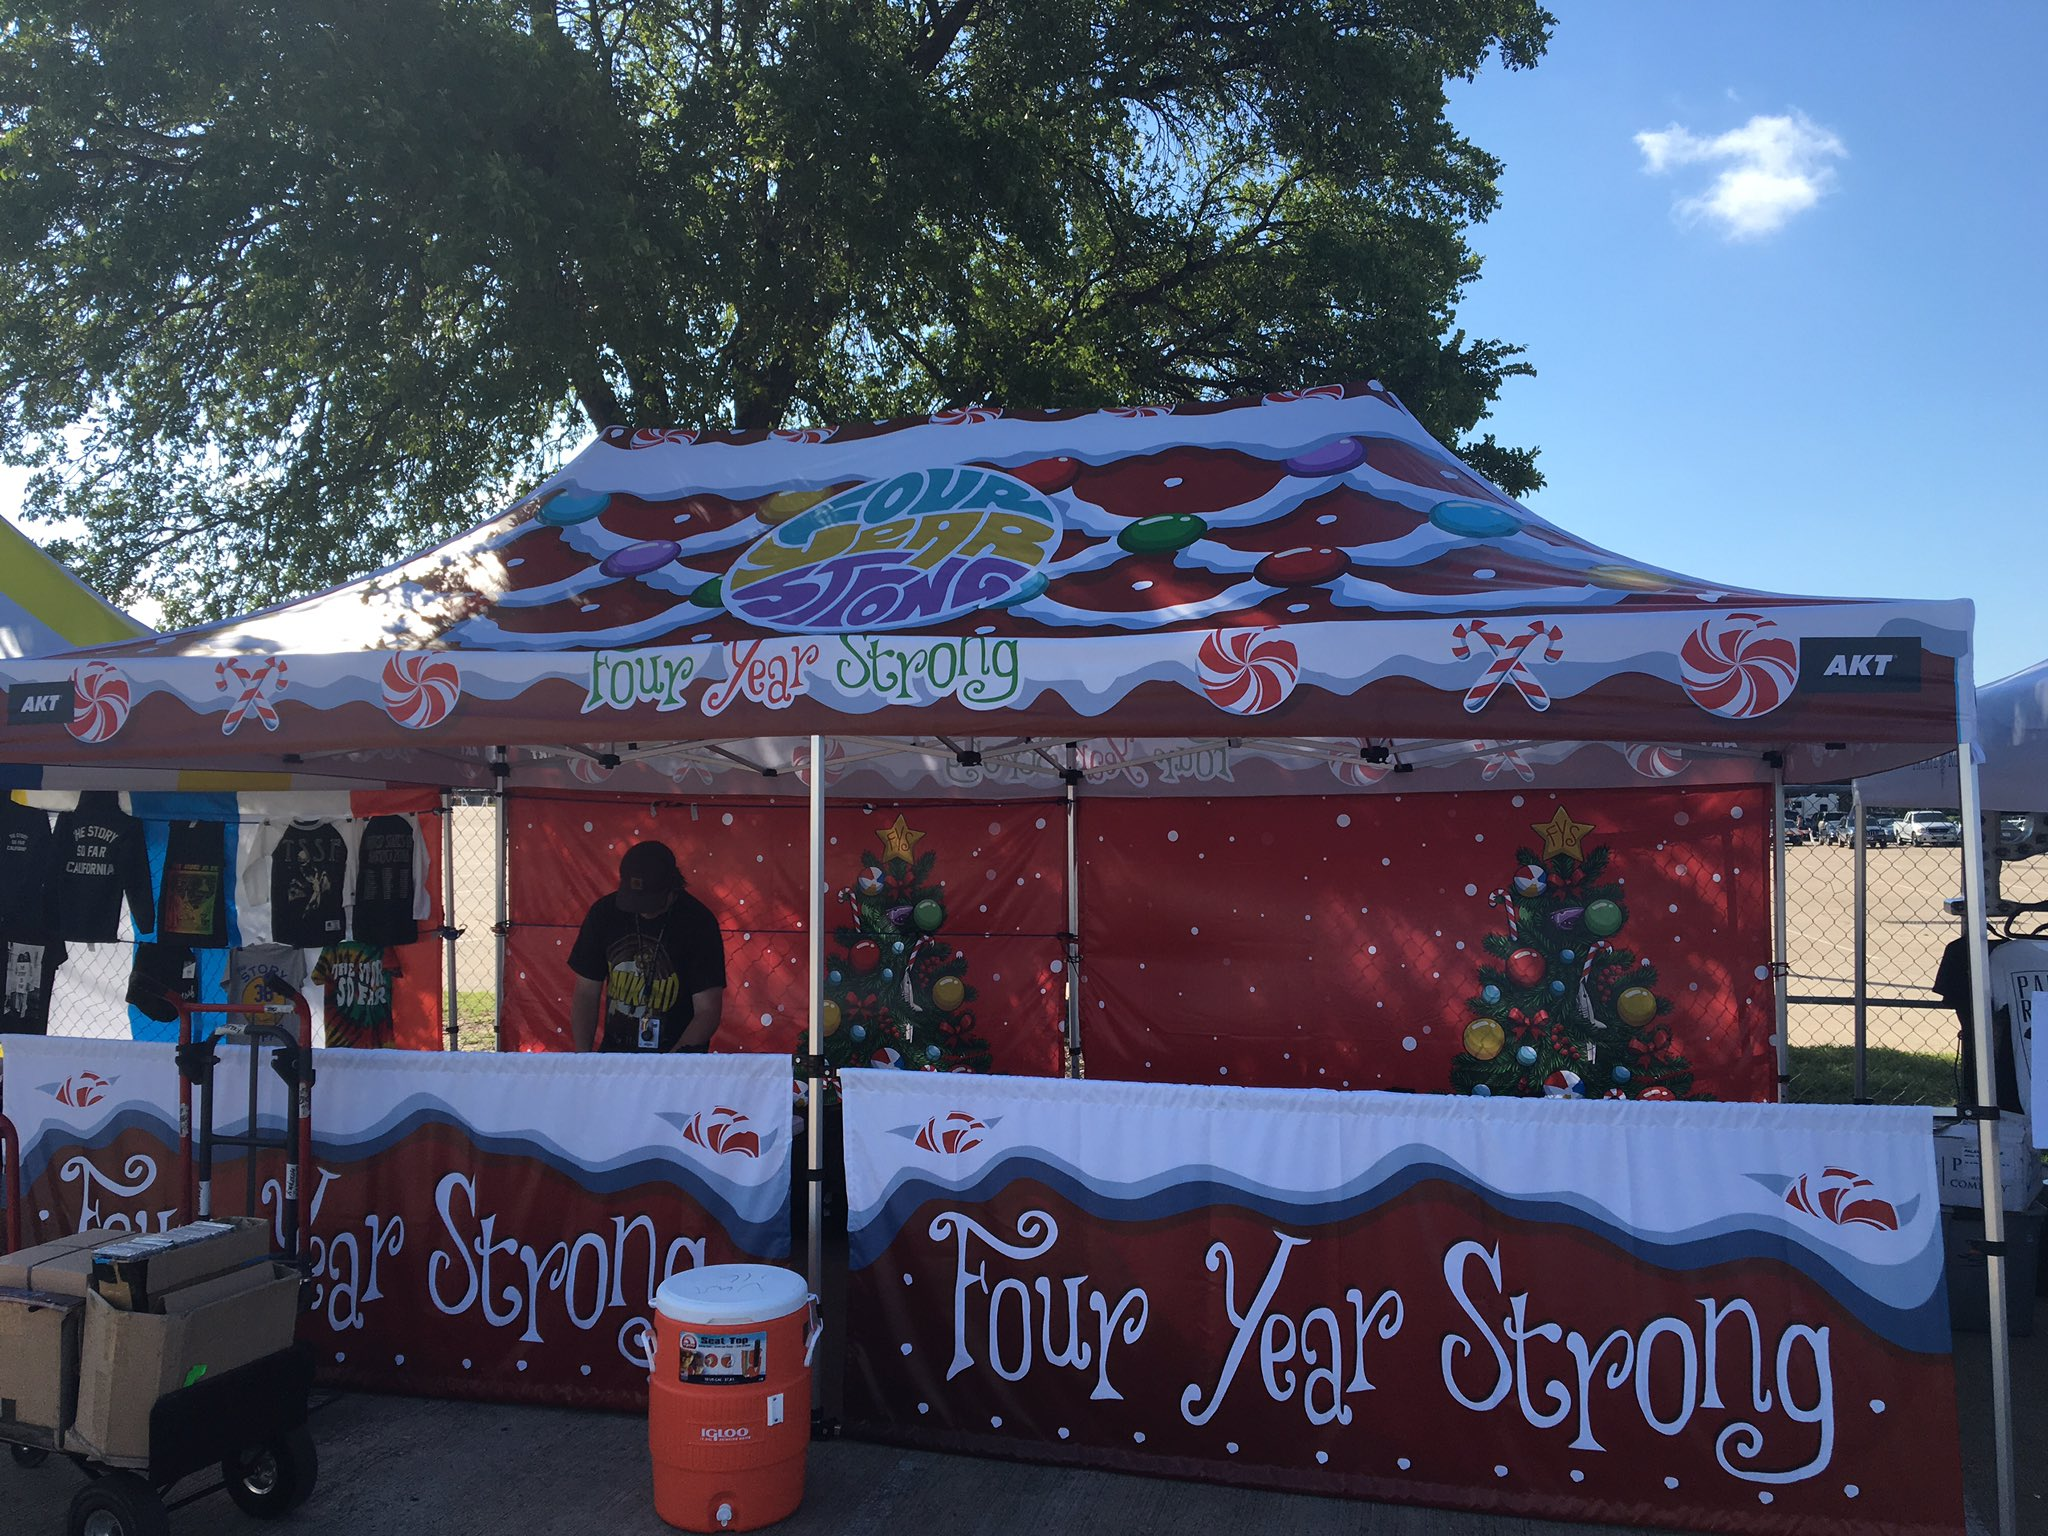 Warped tour....we are here. Just a sampling of our holiday cheer....get ready for a Hawaiian Christmas.... https://t.co/MmiigbhjAp